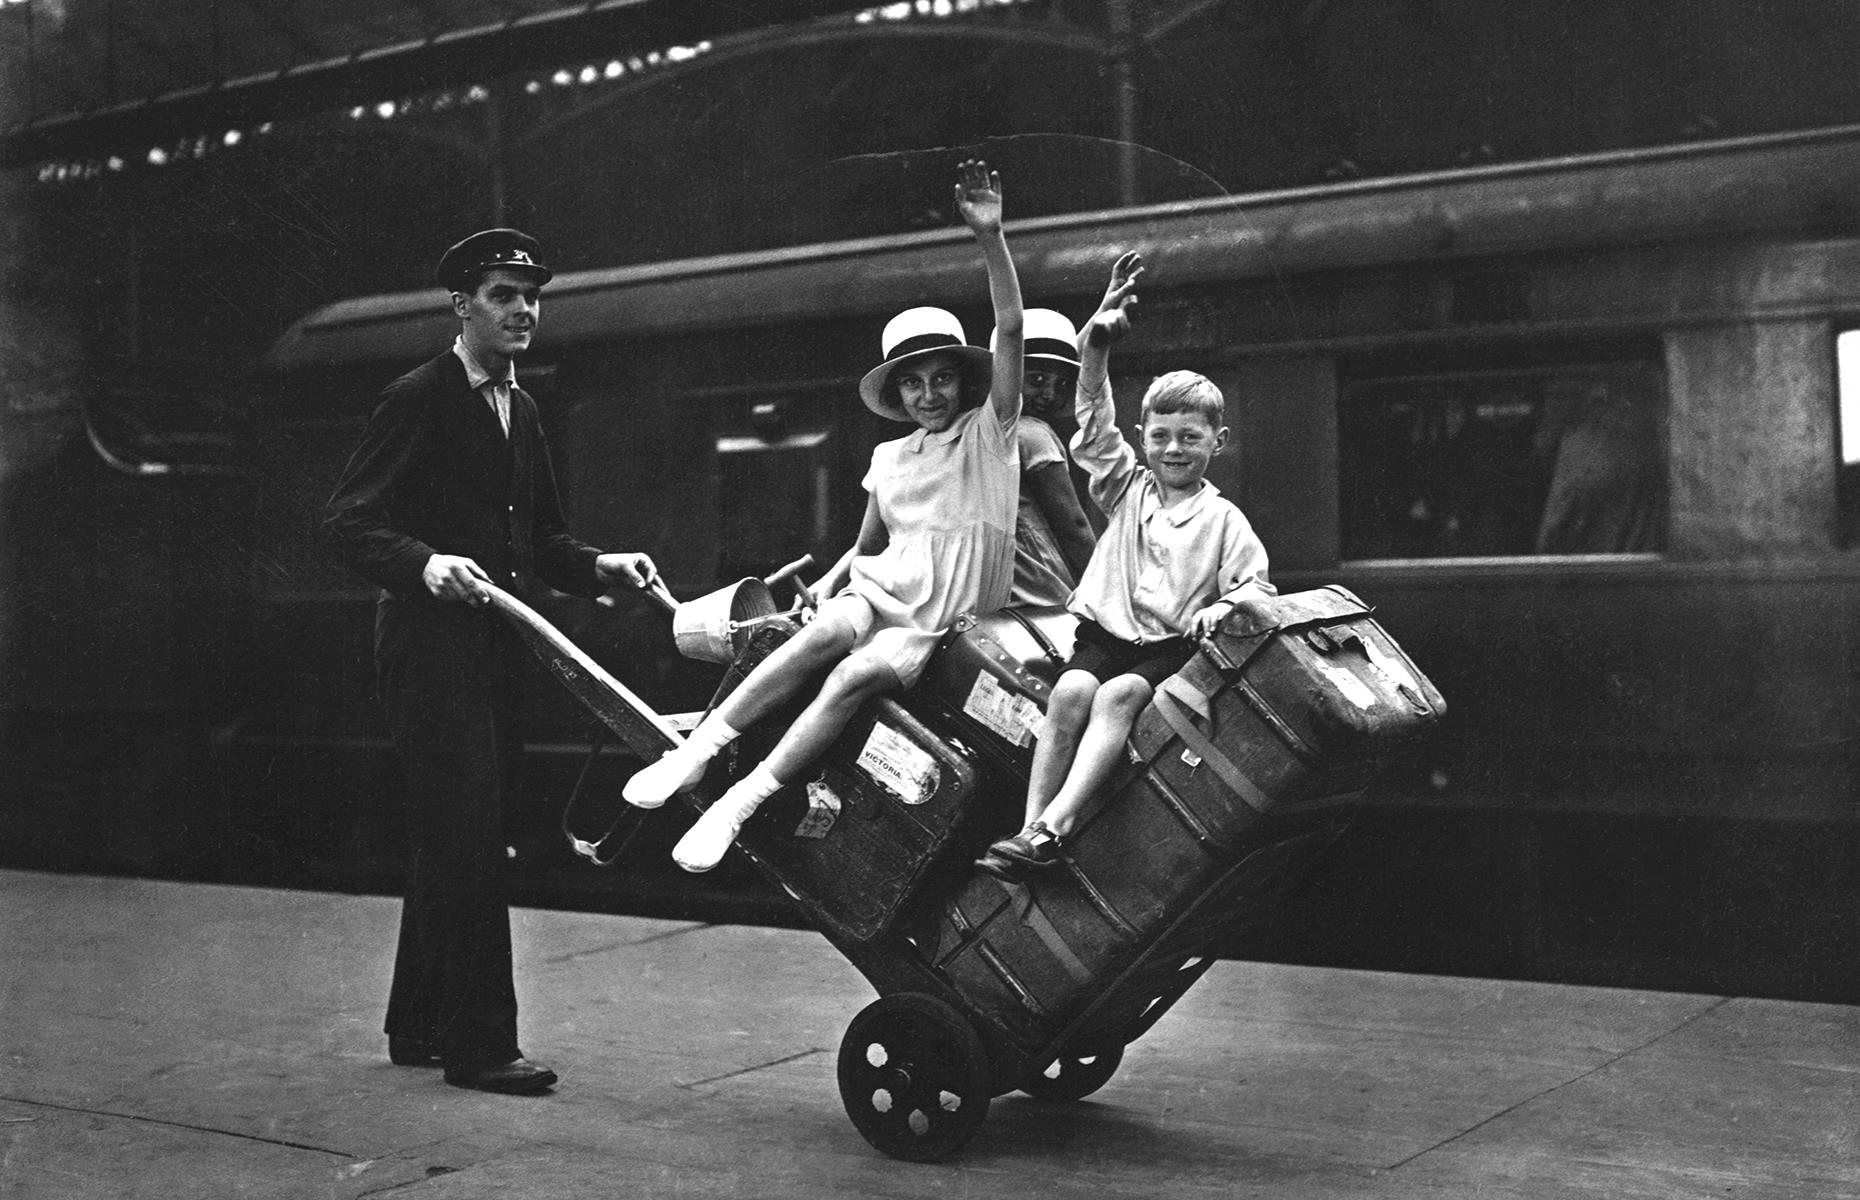 Slide 23 of 35: The ease and efficiency of a journey on the British railway meant that more families (especially those who couldn't afford a motor car) were able to enjoy short breaks and leisure excursions around the country. Here a group of delighted young vacationers enjoy a ride on a luggage cart at Euston station.